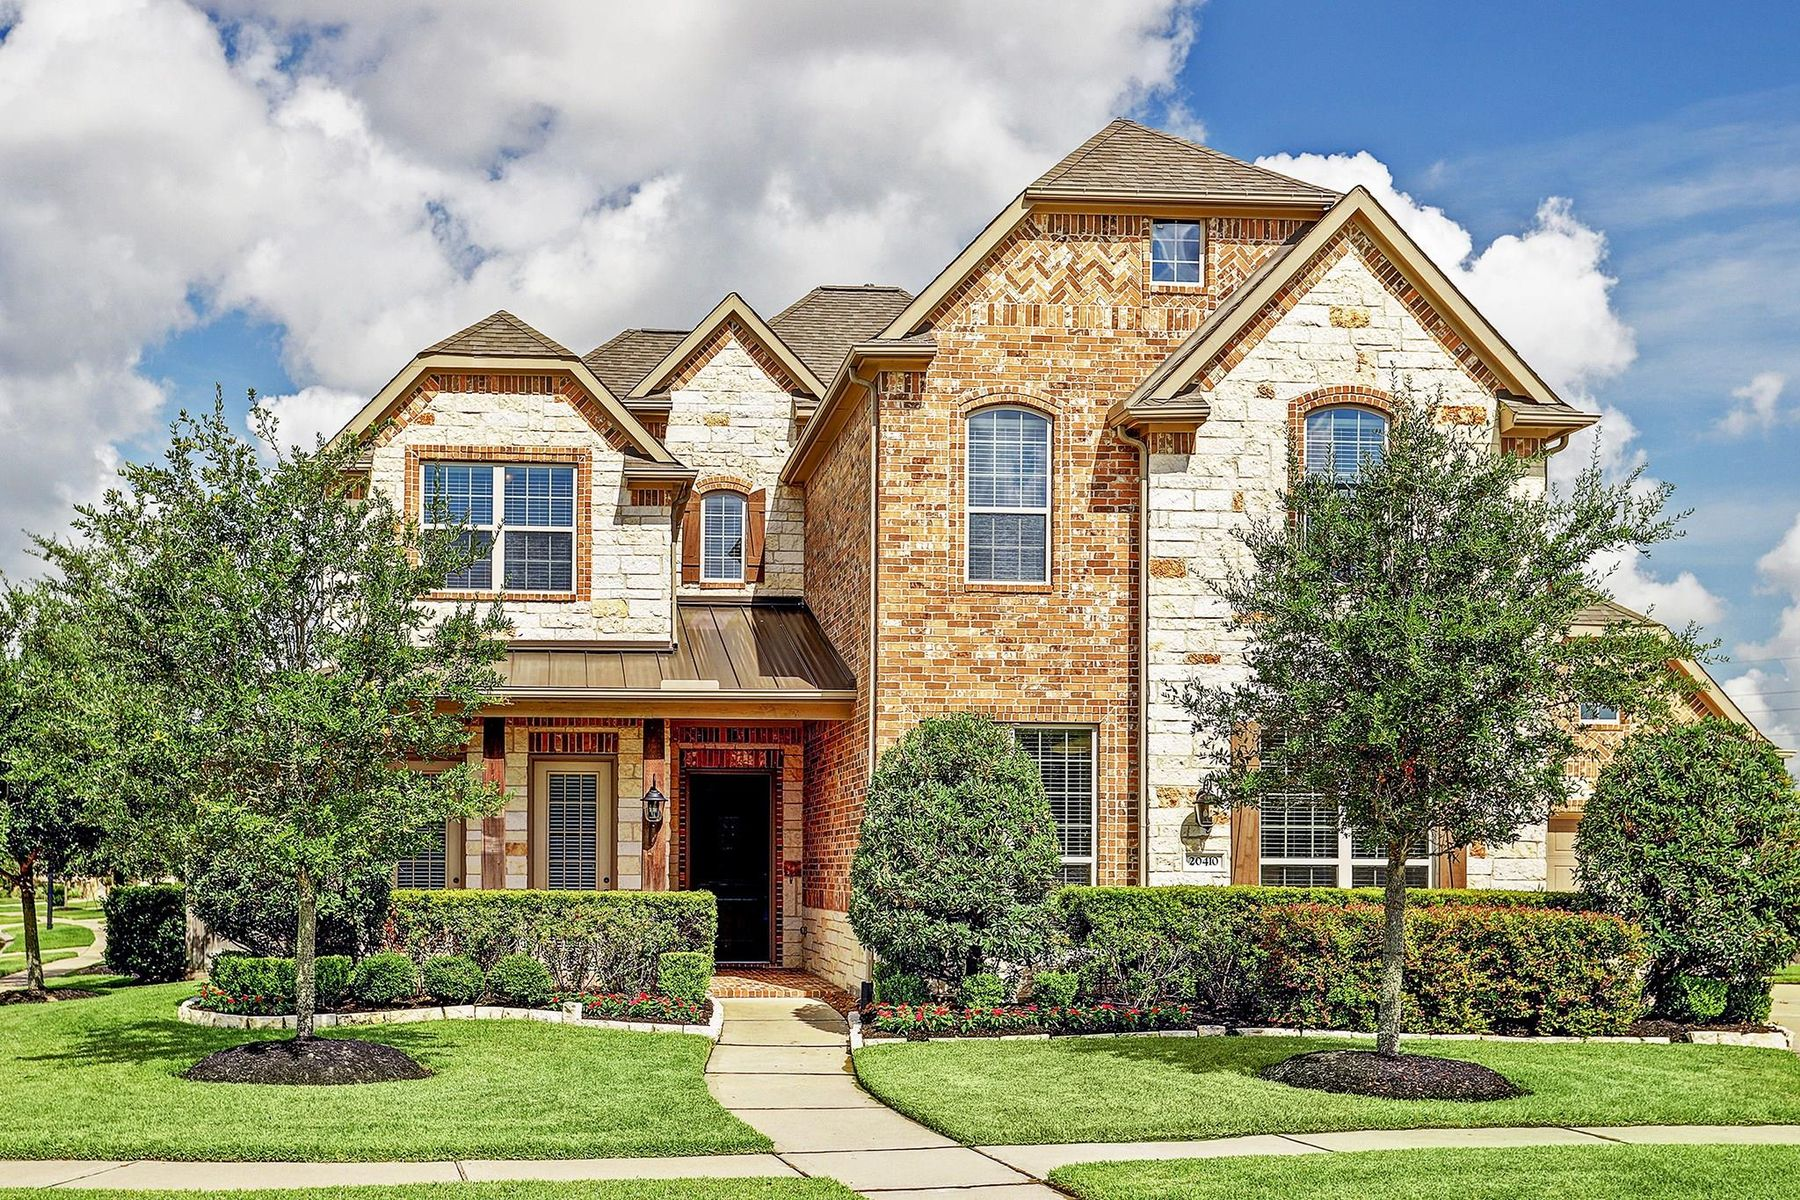 Single Family Homes for Sale at 20410 Chatfield Run Court Cypress, Texas 77433 United States